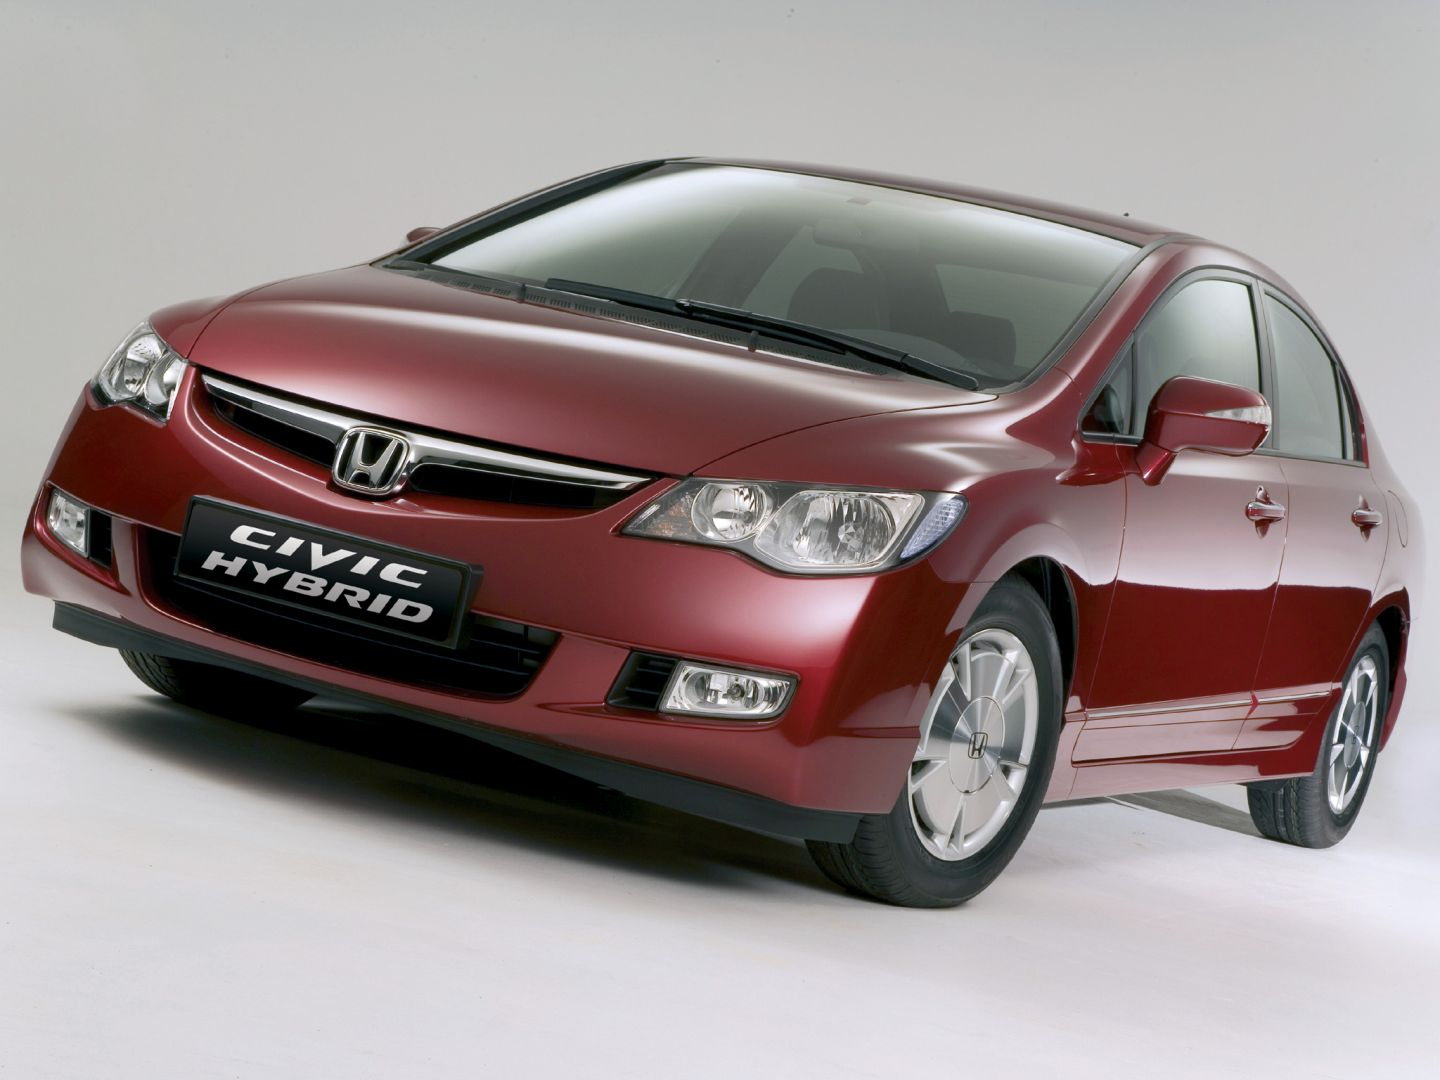 Read Honda Civic reviews amp specs view Honda Civic pictures amp videos and get Honda Civic prices amp buying advice for both new amp used models here